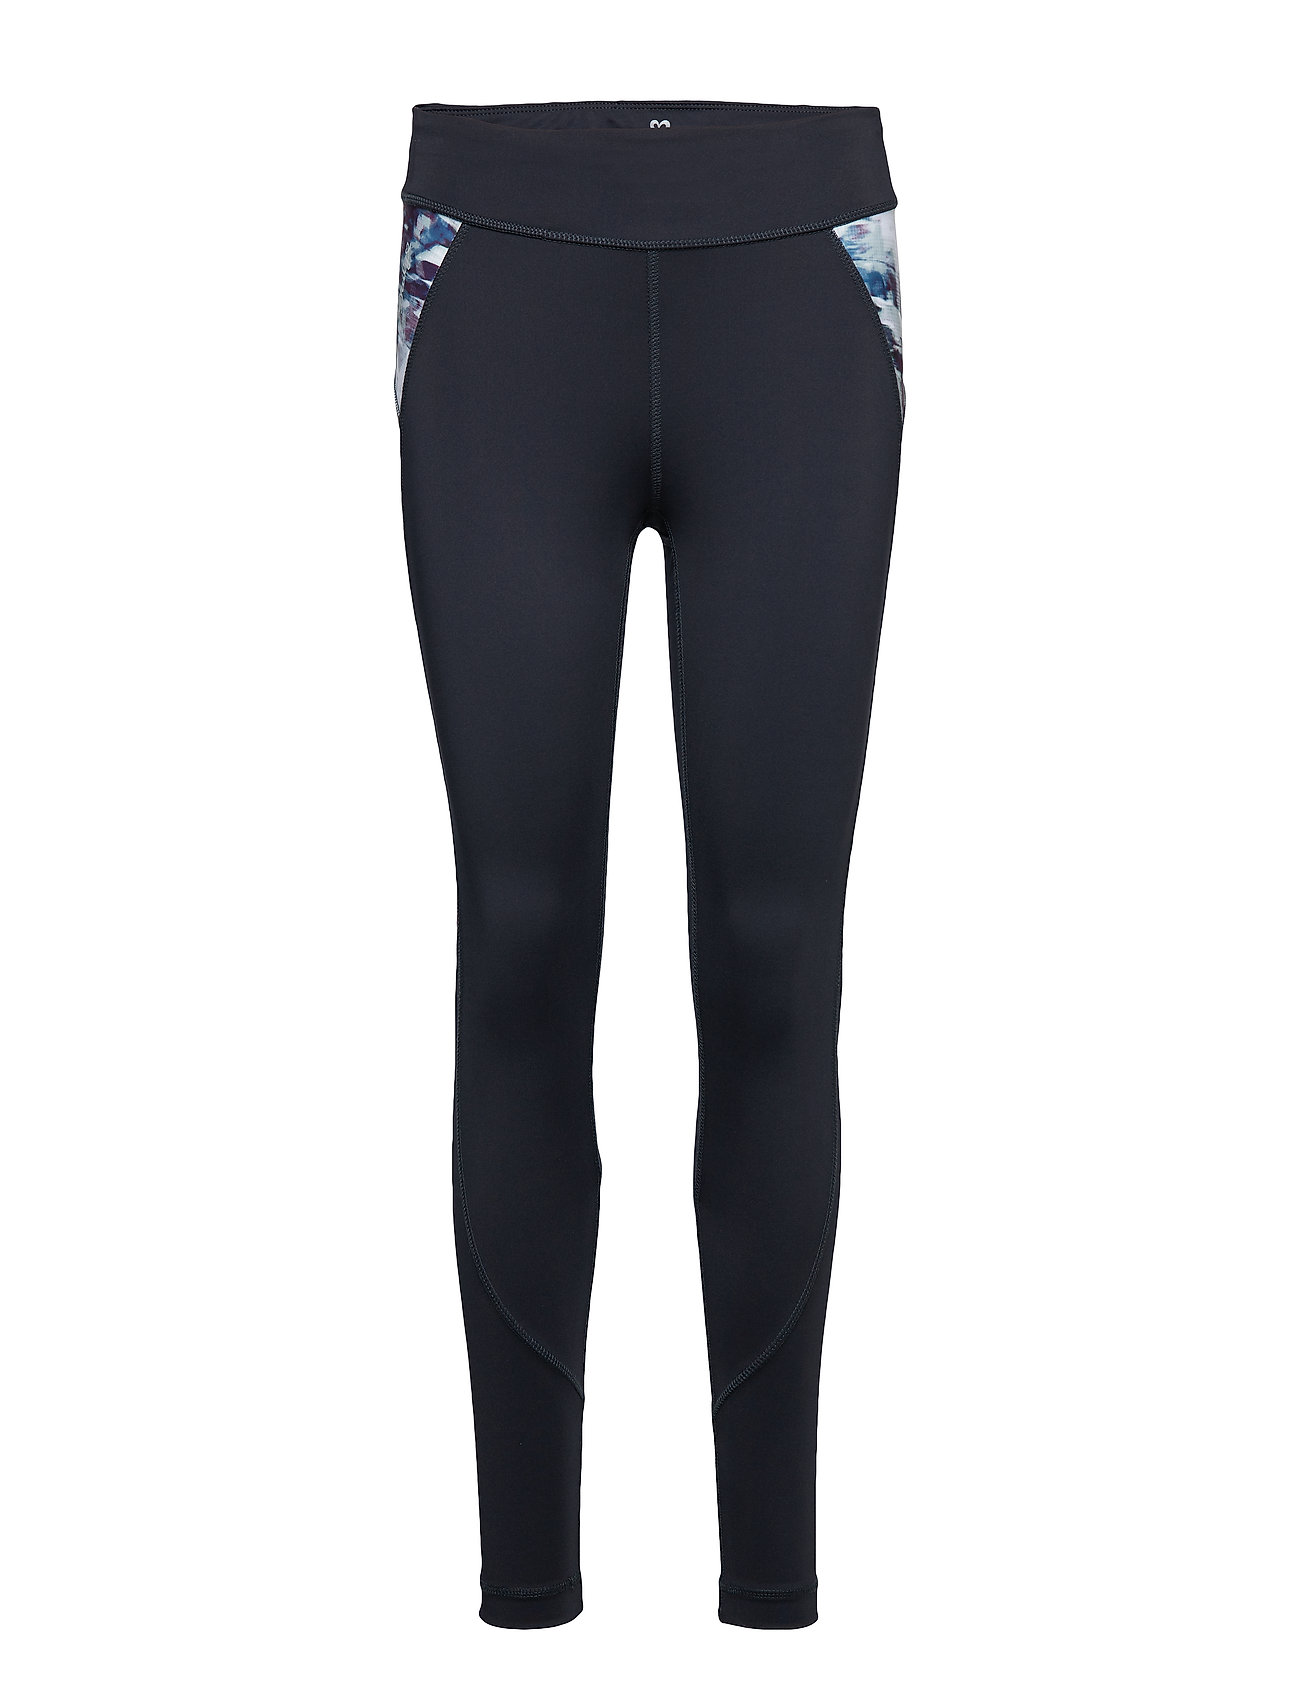 Daily Sports RESILIENT TIGHTS